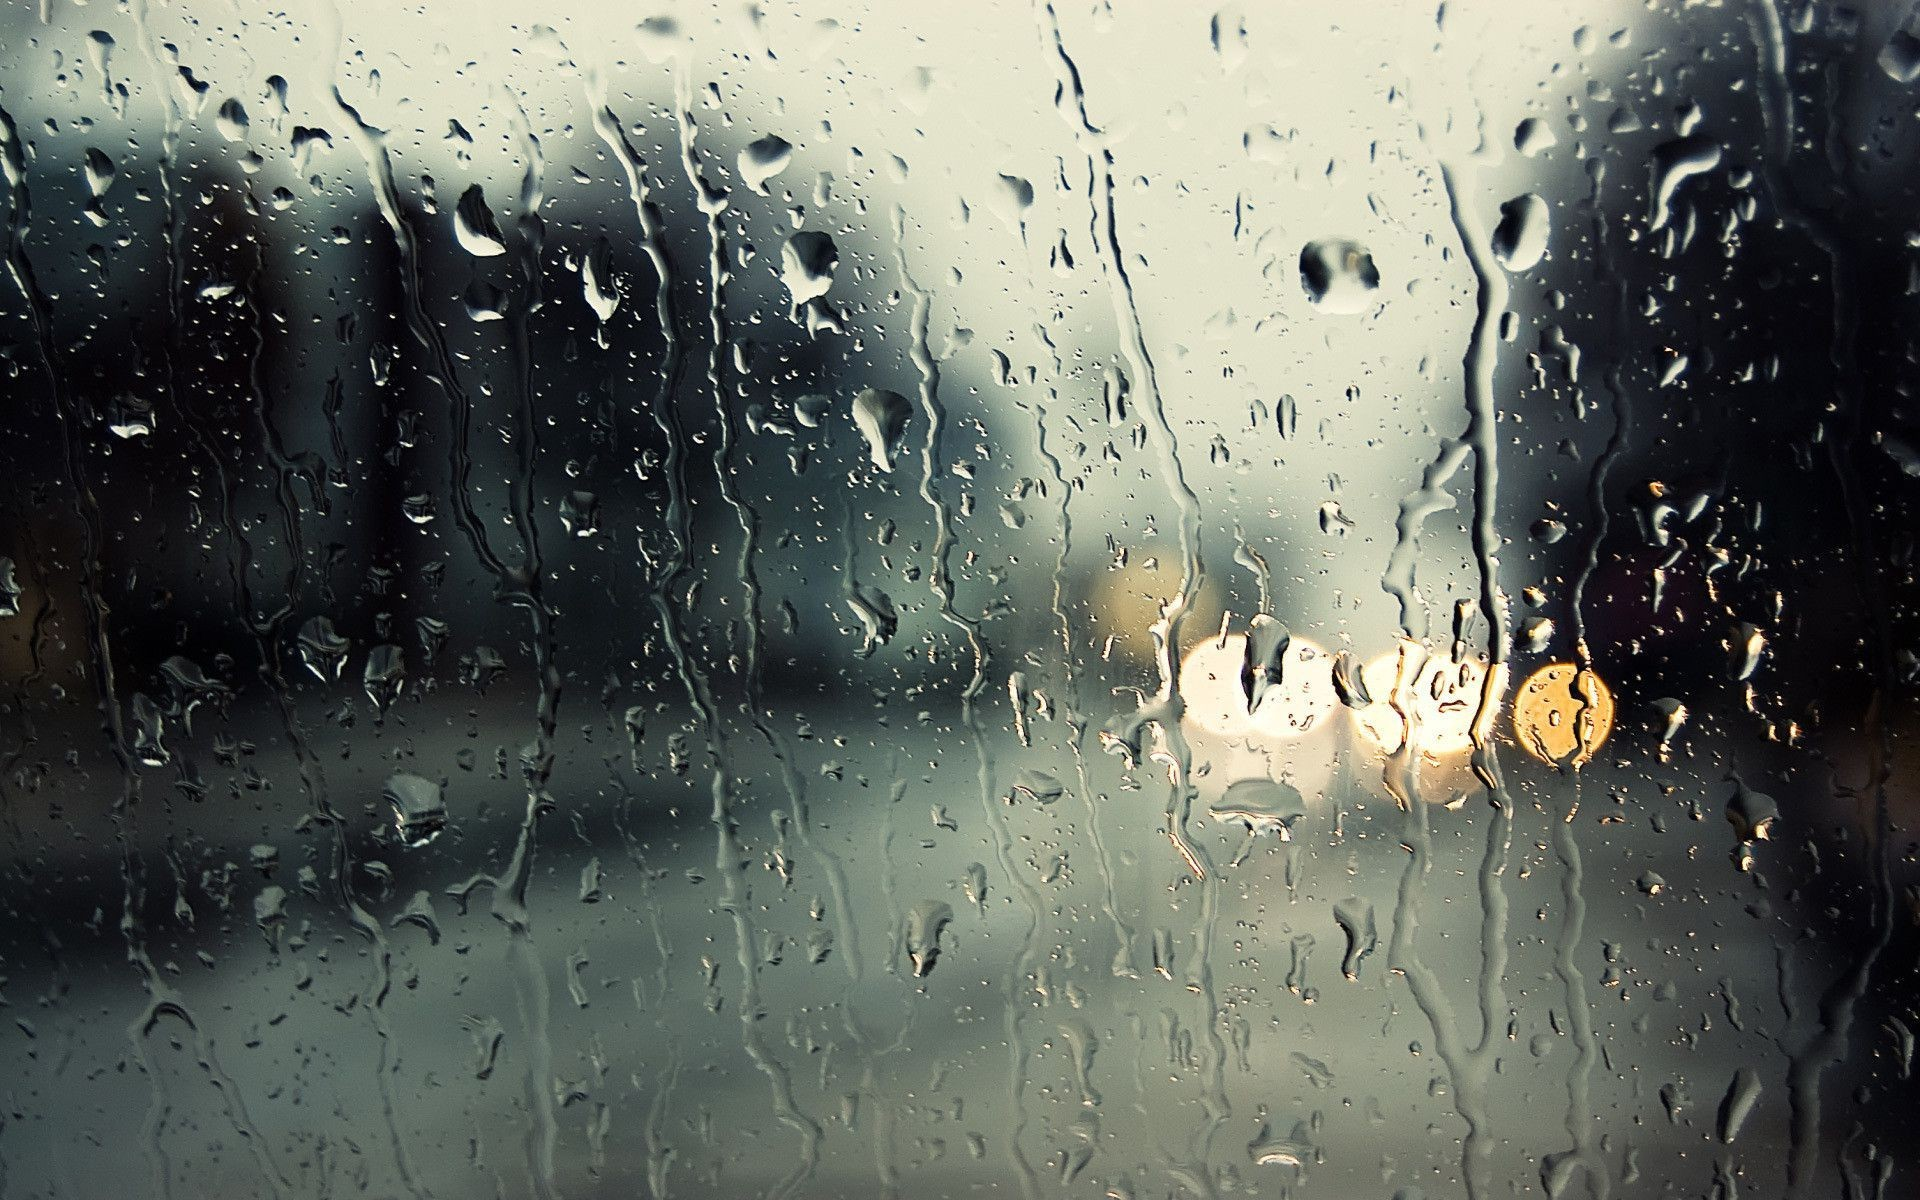 Rain Wallpaper Hd Download Free Awesome Full Hd Wallpapers For